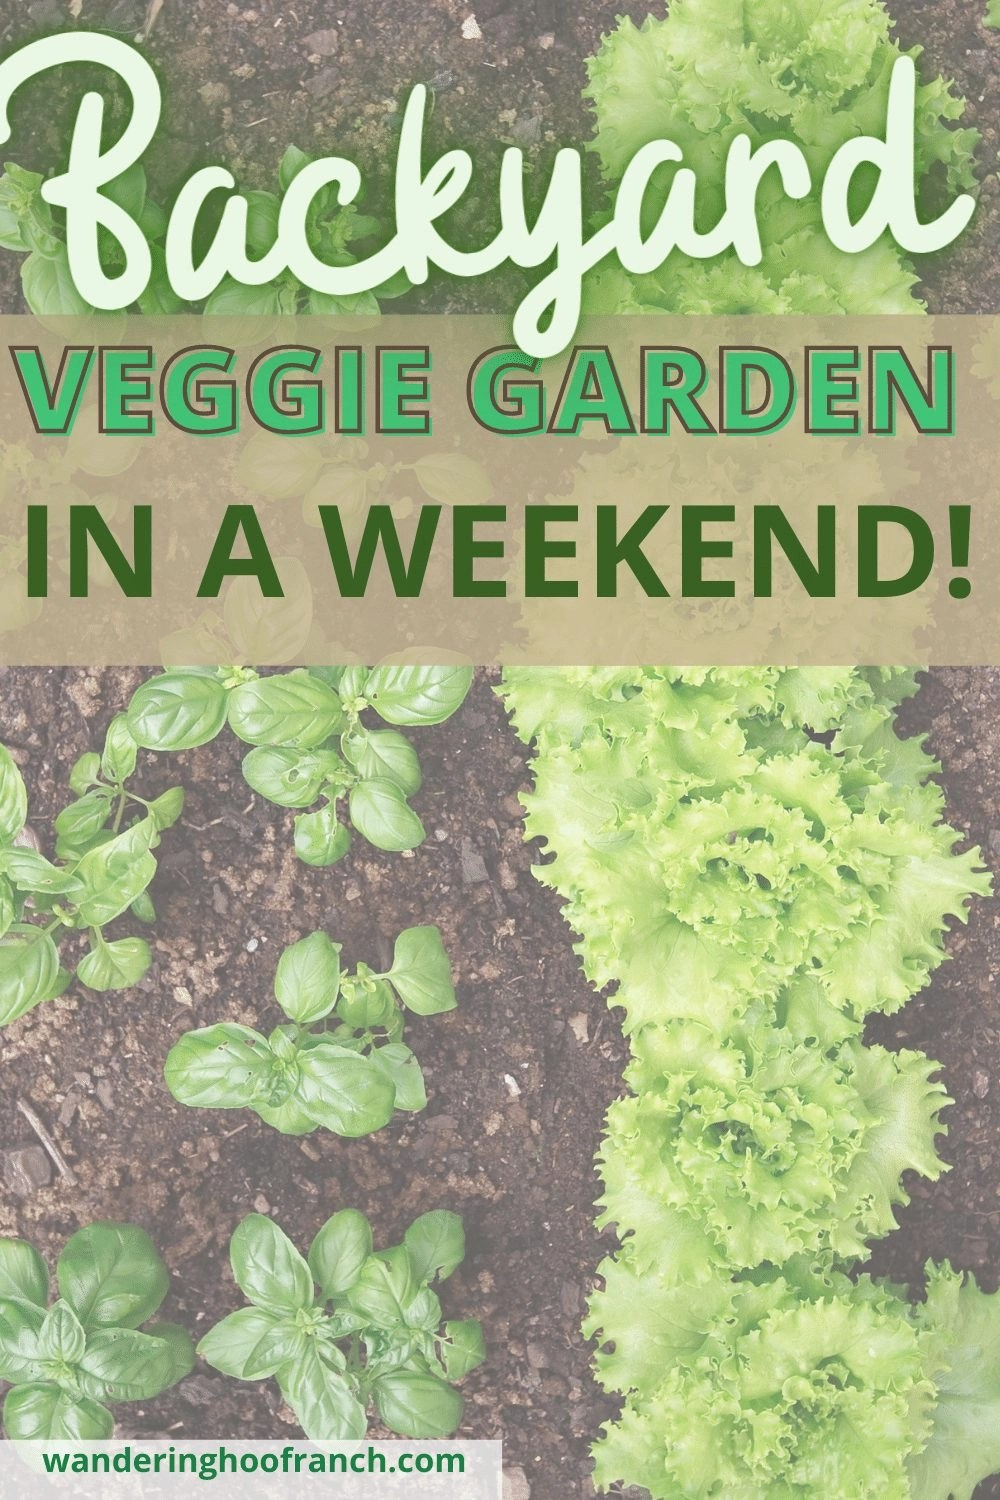 lettuce and basil growing in the ground in a vegetable garden using the back to eden garden method.